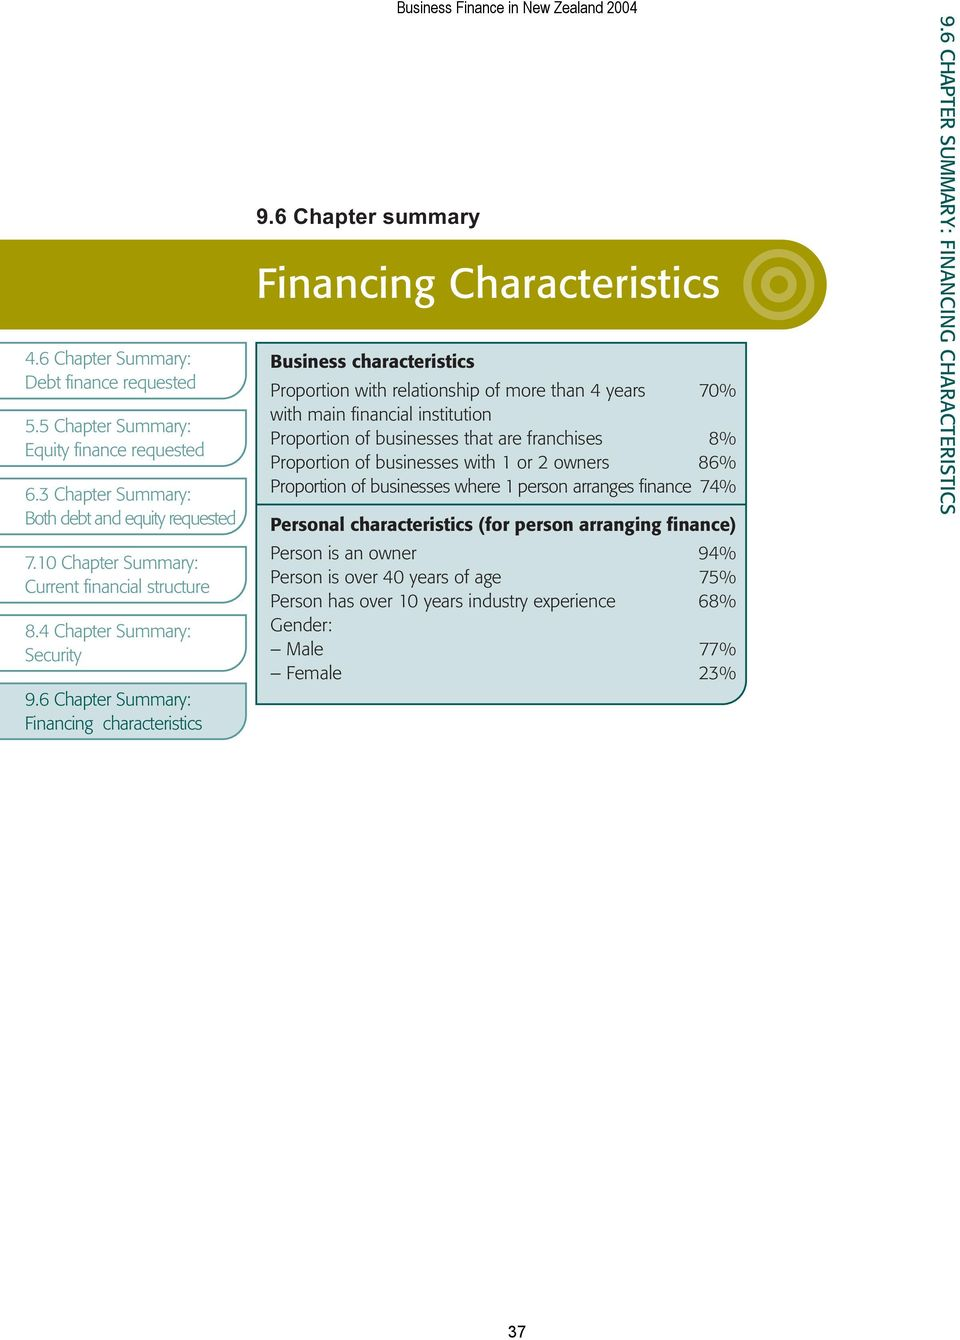 6 Chapter Summary: Financing characteristics Business Finance in New Zealand 2004 Financing Characteristics Business characteristics Proportion with relationship of more than 4 years 70% with main